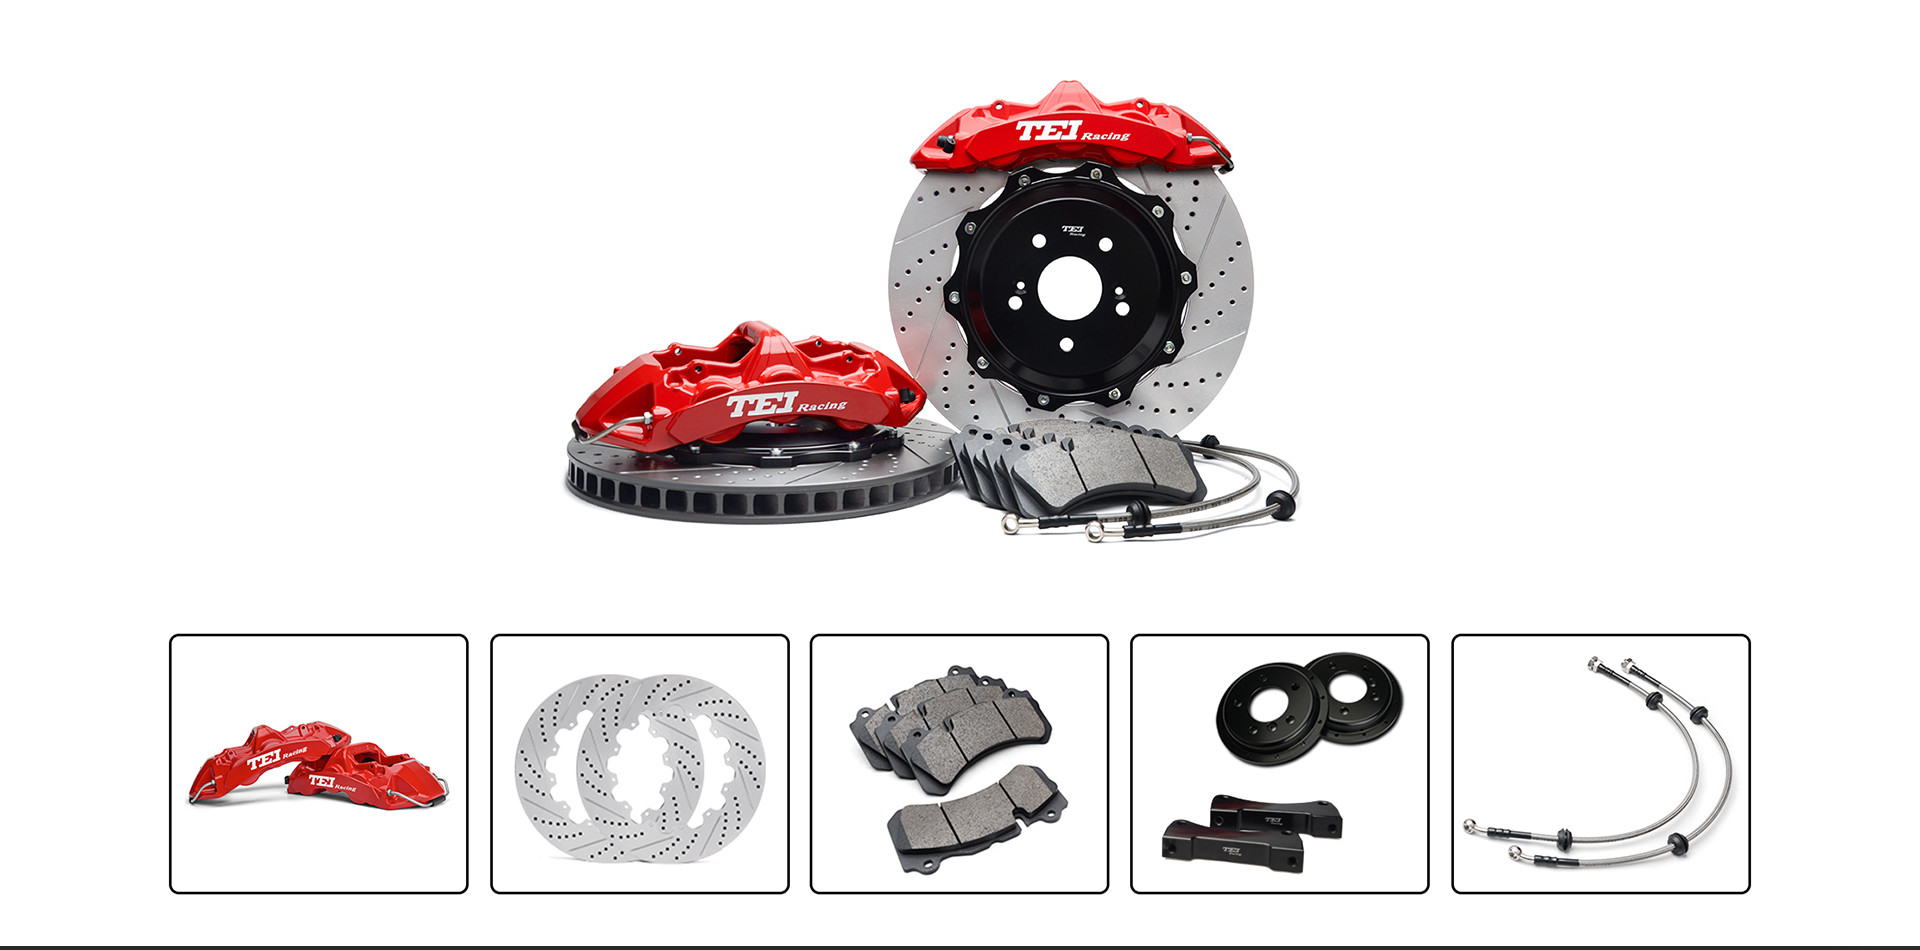 BBK For Honda Accord Big Brake Kit 6 Piston Caliper With 355*32mm Rotor Front Wheel